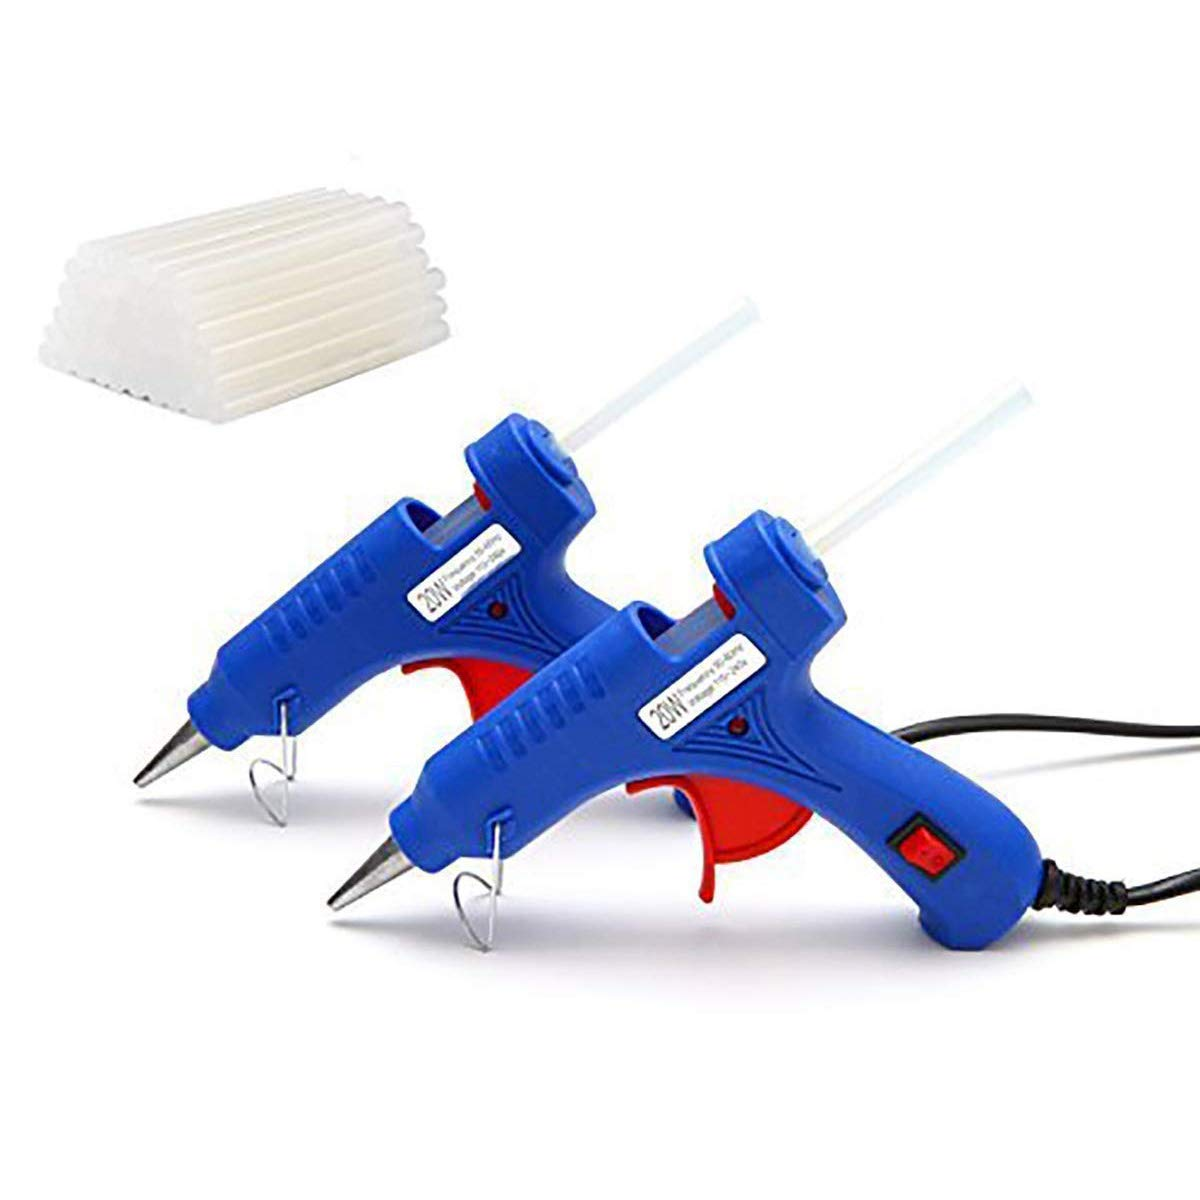 CloverTale 2 Pack Set Mini Hot Glue Gun with 50 Pieces Glue Sticks, 20 Watts Ceramic Heating Glue Gun for DIY Craft Projects Sealing and Quick Repair Kit by Fstop Labs (Image #1)